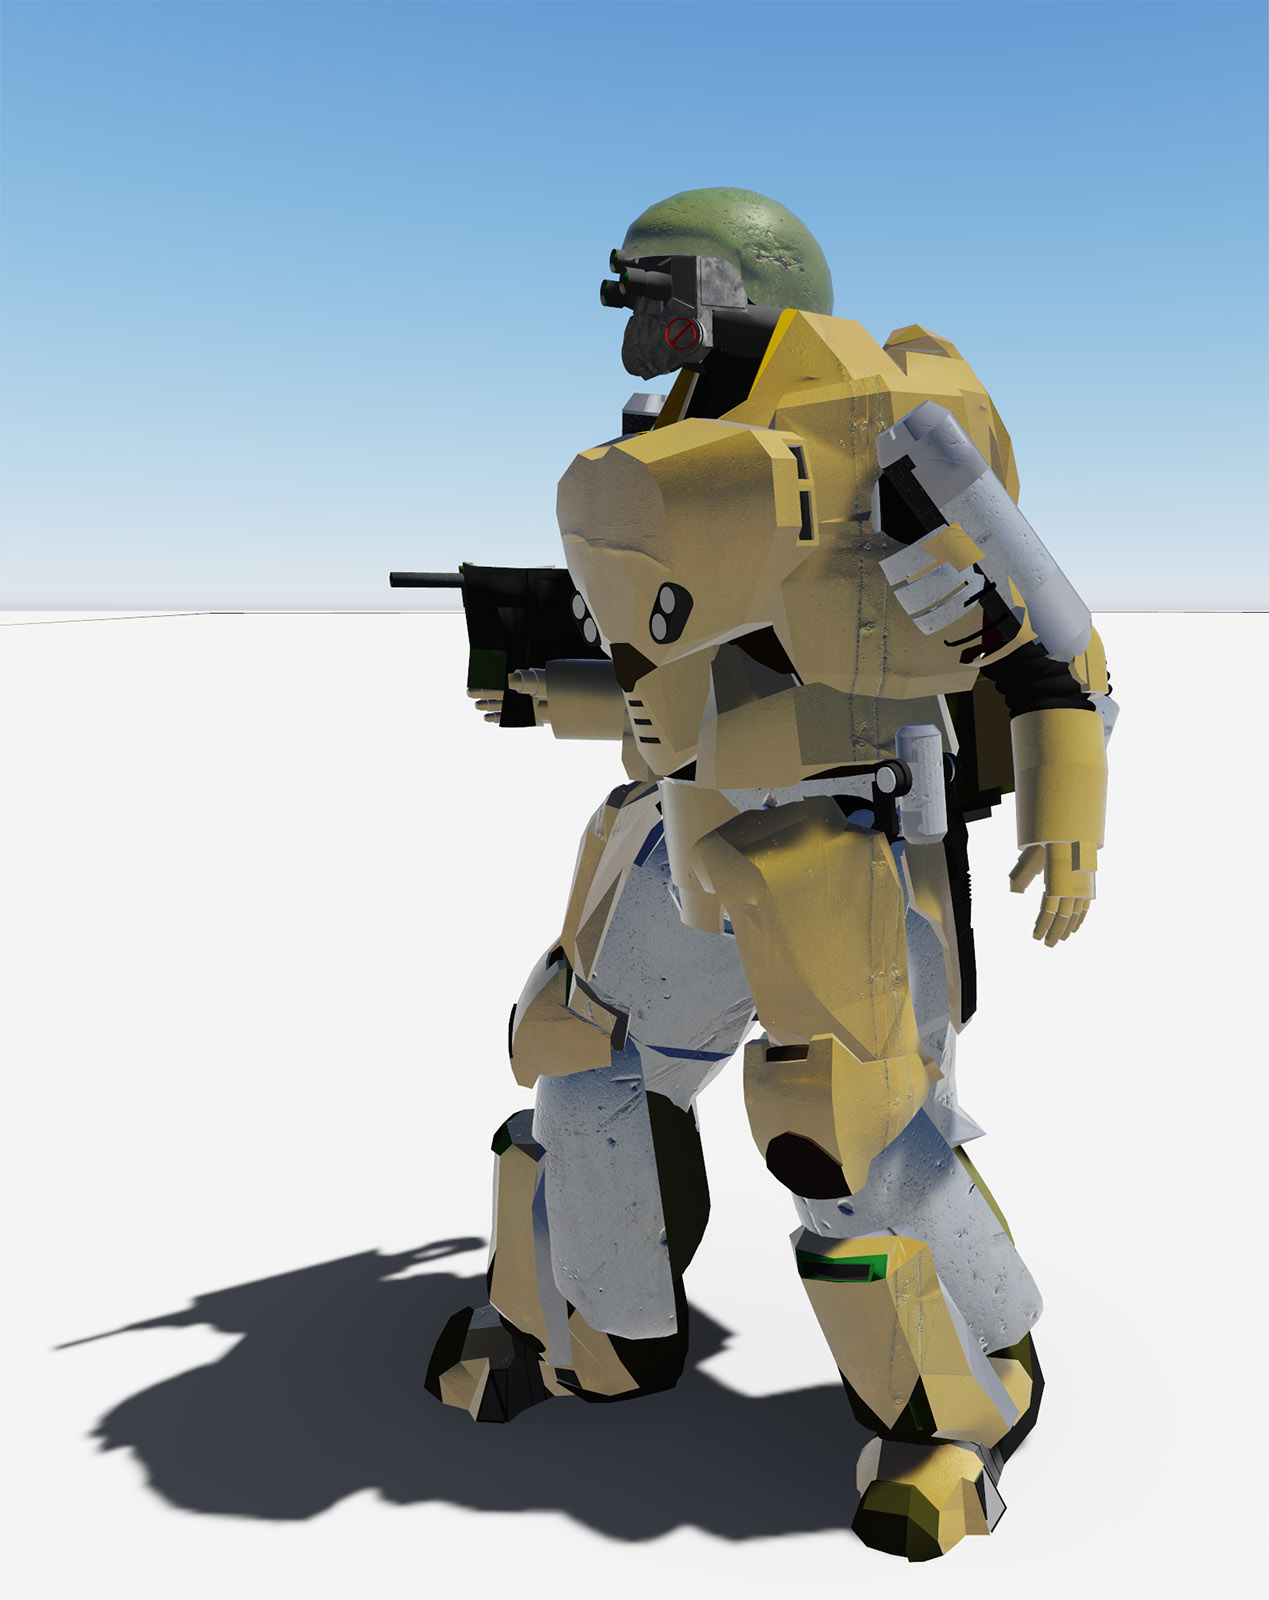 Army robot - Extended Licence by rafaelbalta